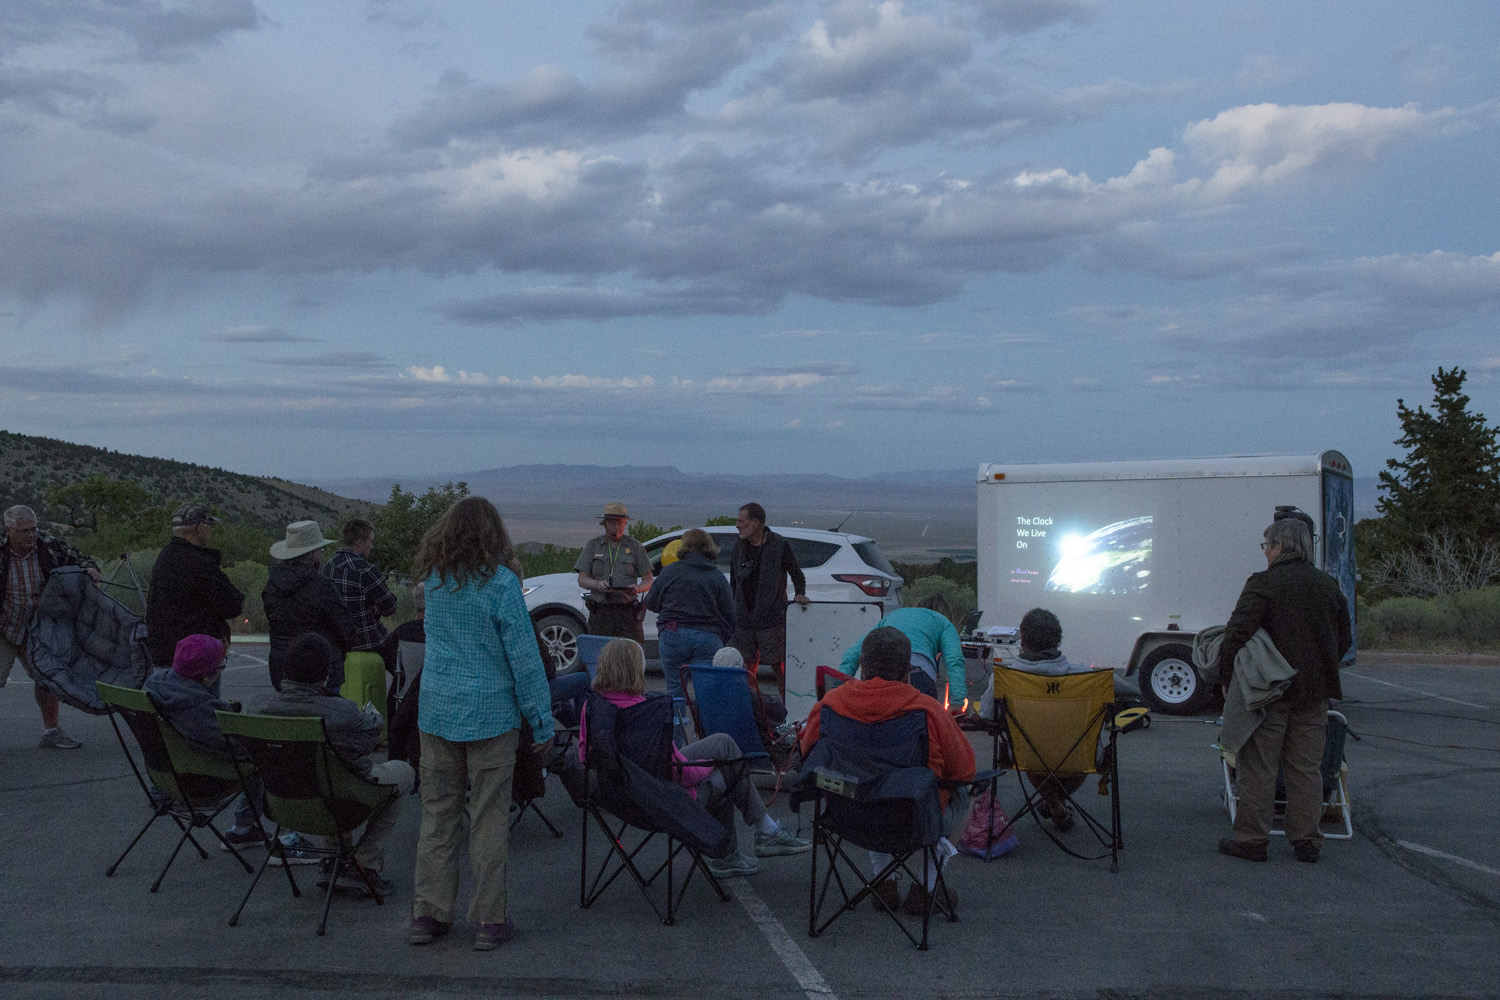 Stargazing program at the visitor's center. The clouds are not a good sign.